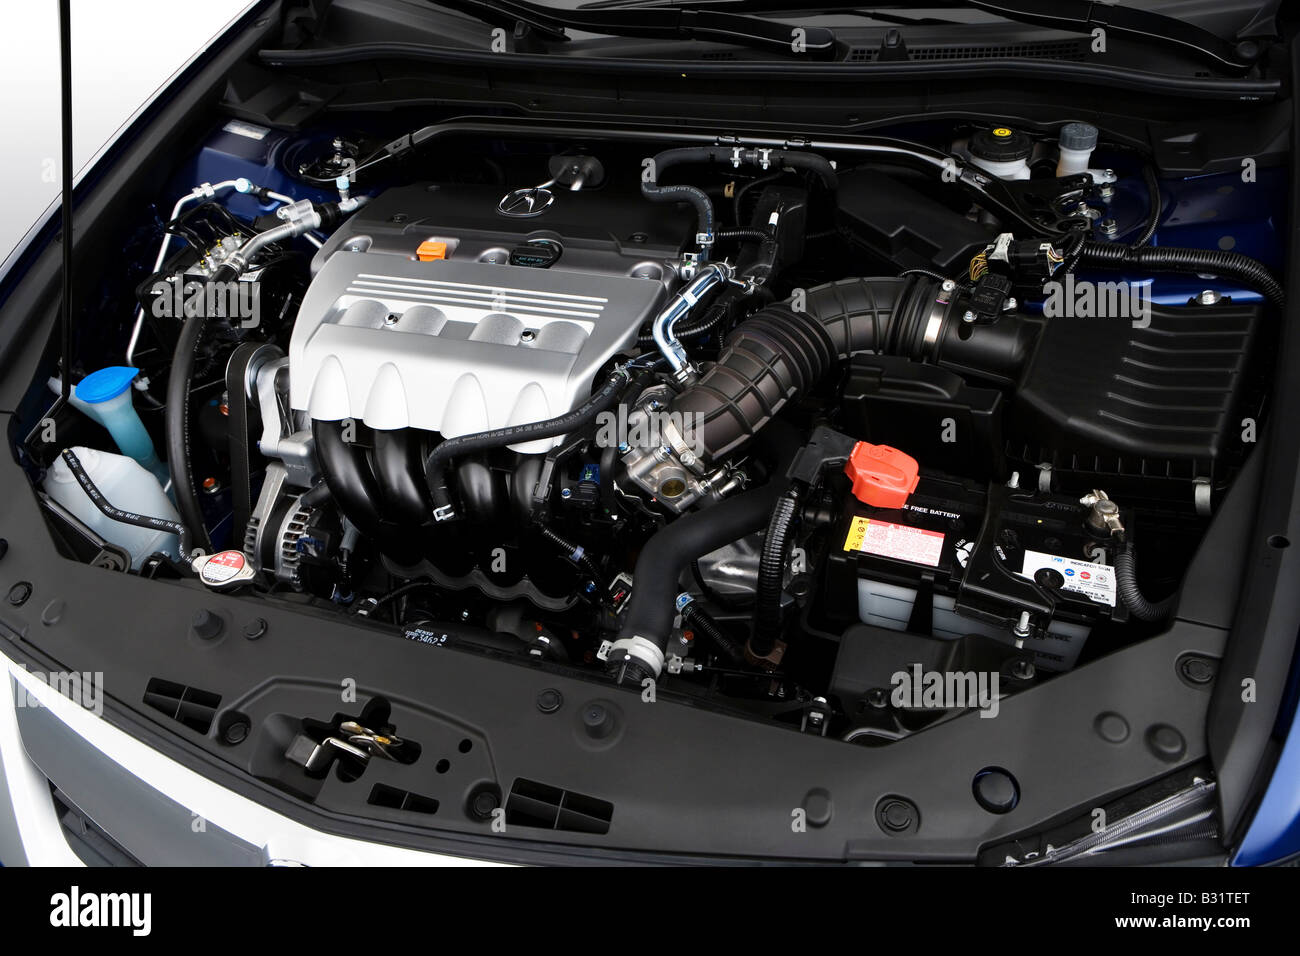 Acura Tsx Stock Photos Acura Tsx Stock Images Alamy - Acura tsx engine